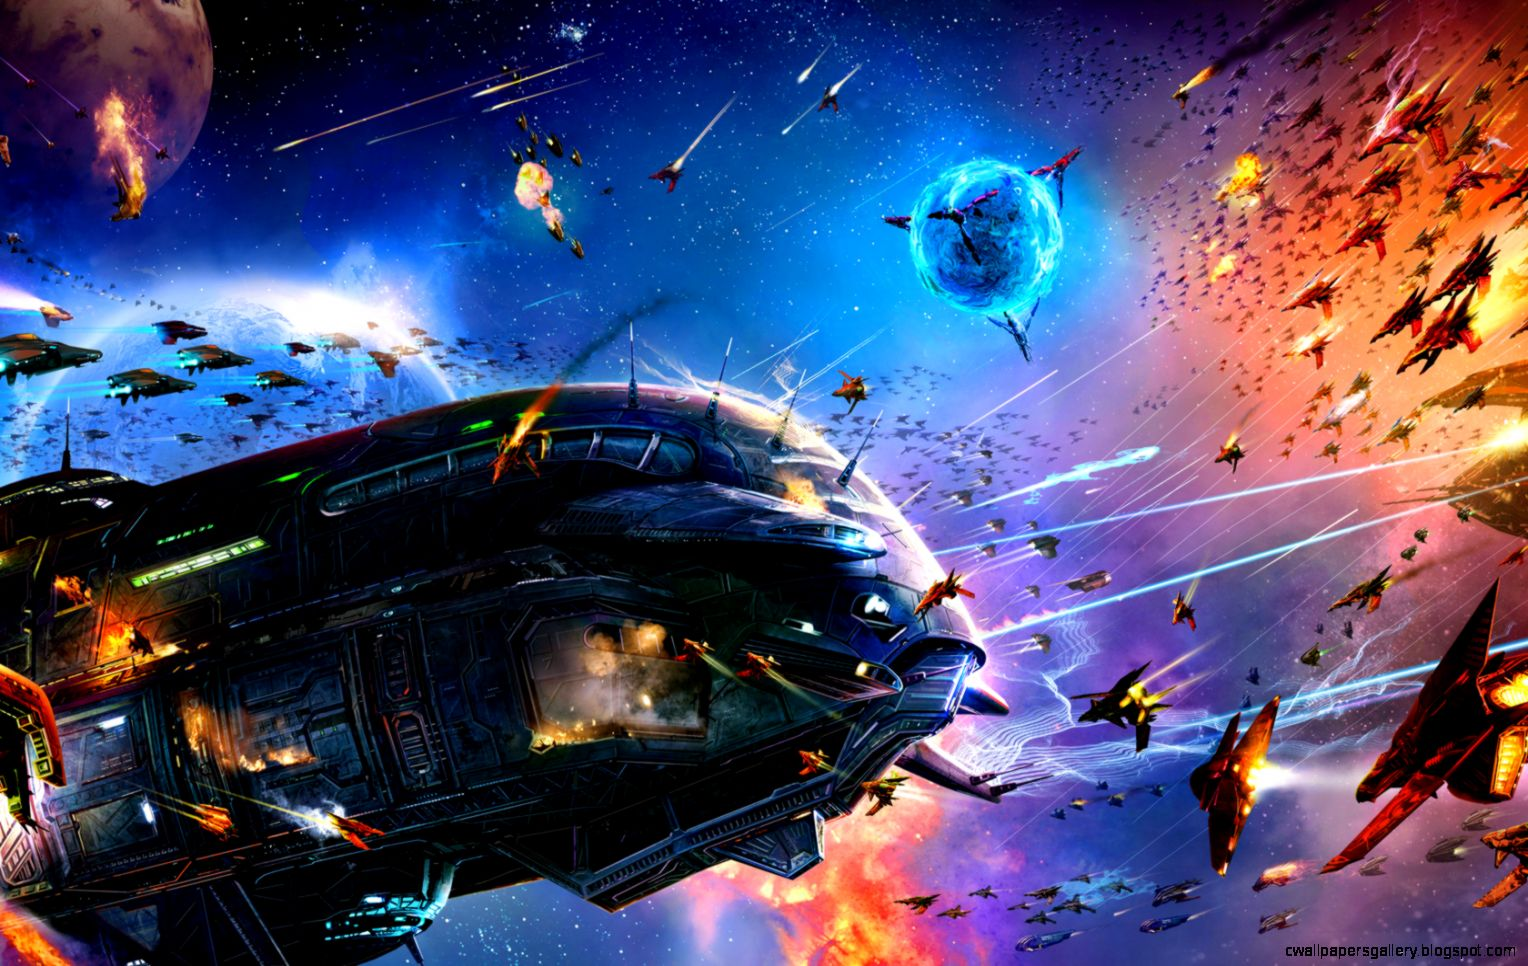 Star Wars Space Battle Wallpaper   WallpaperSafari